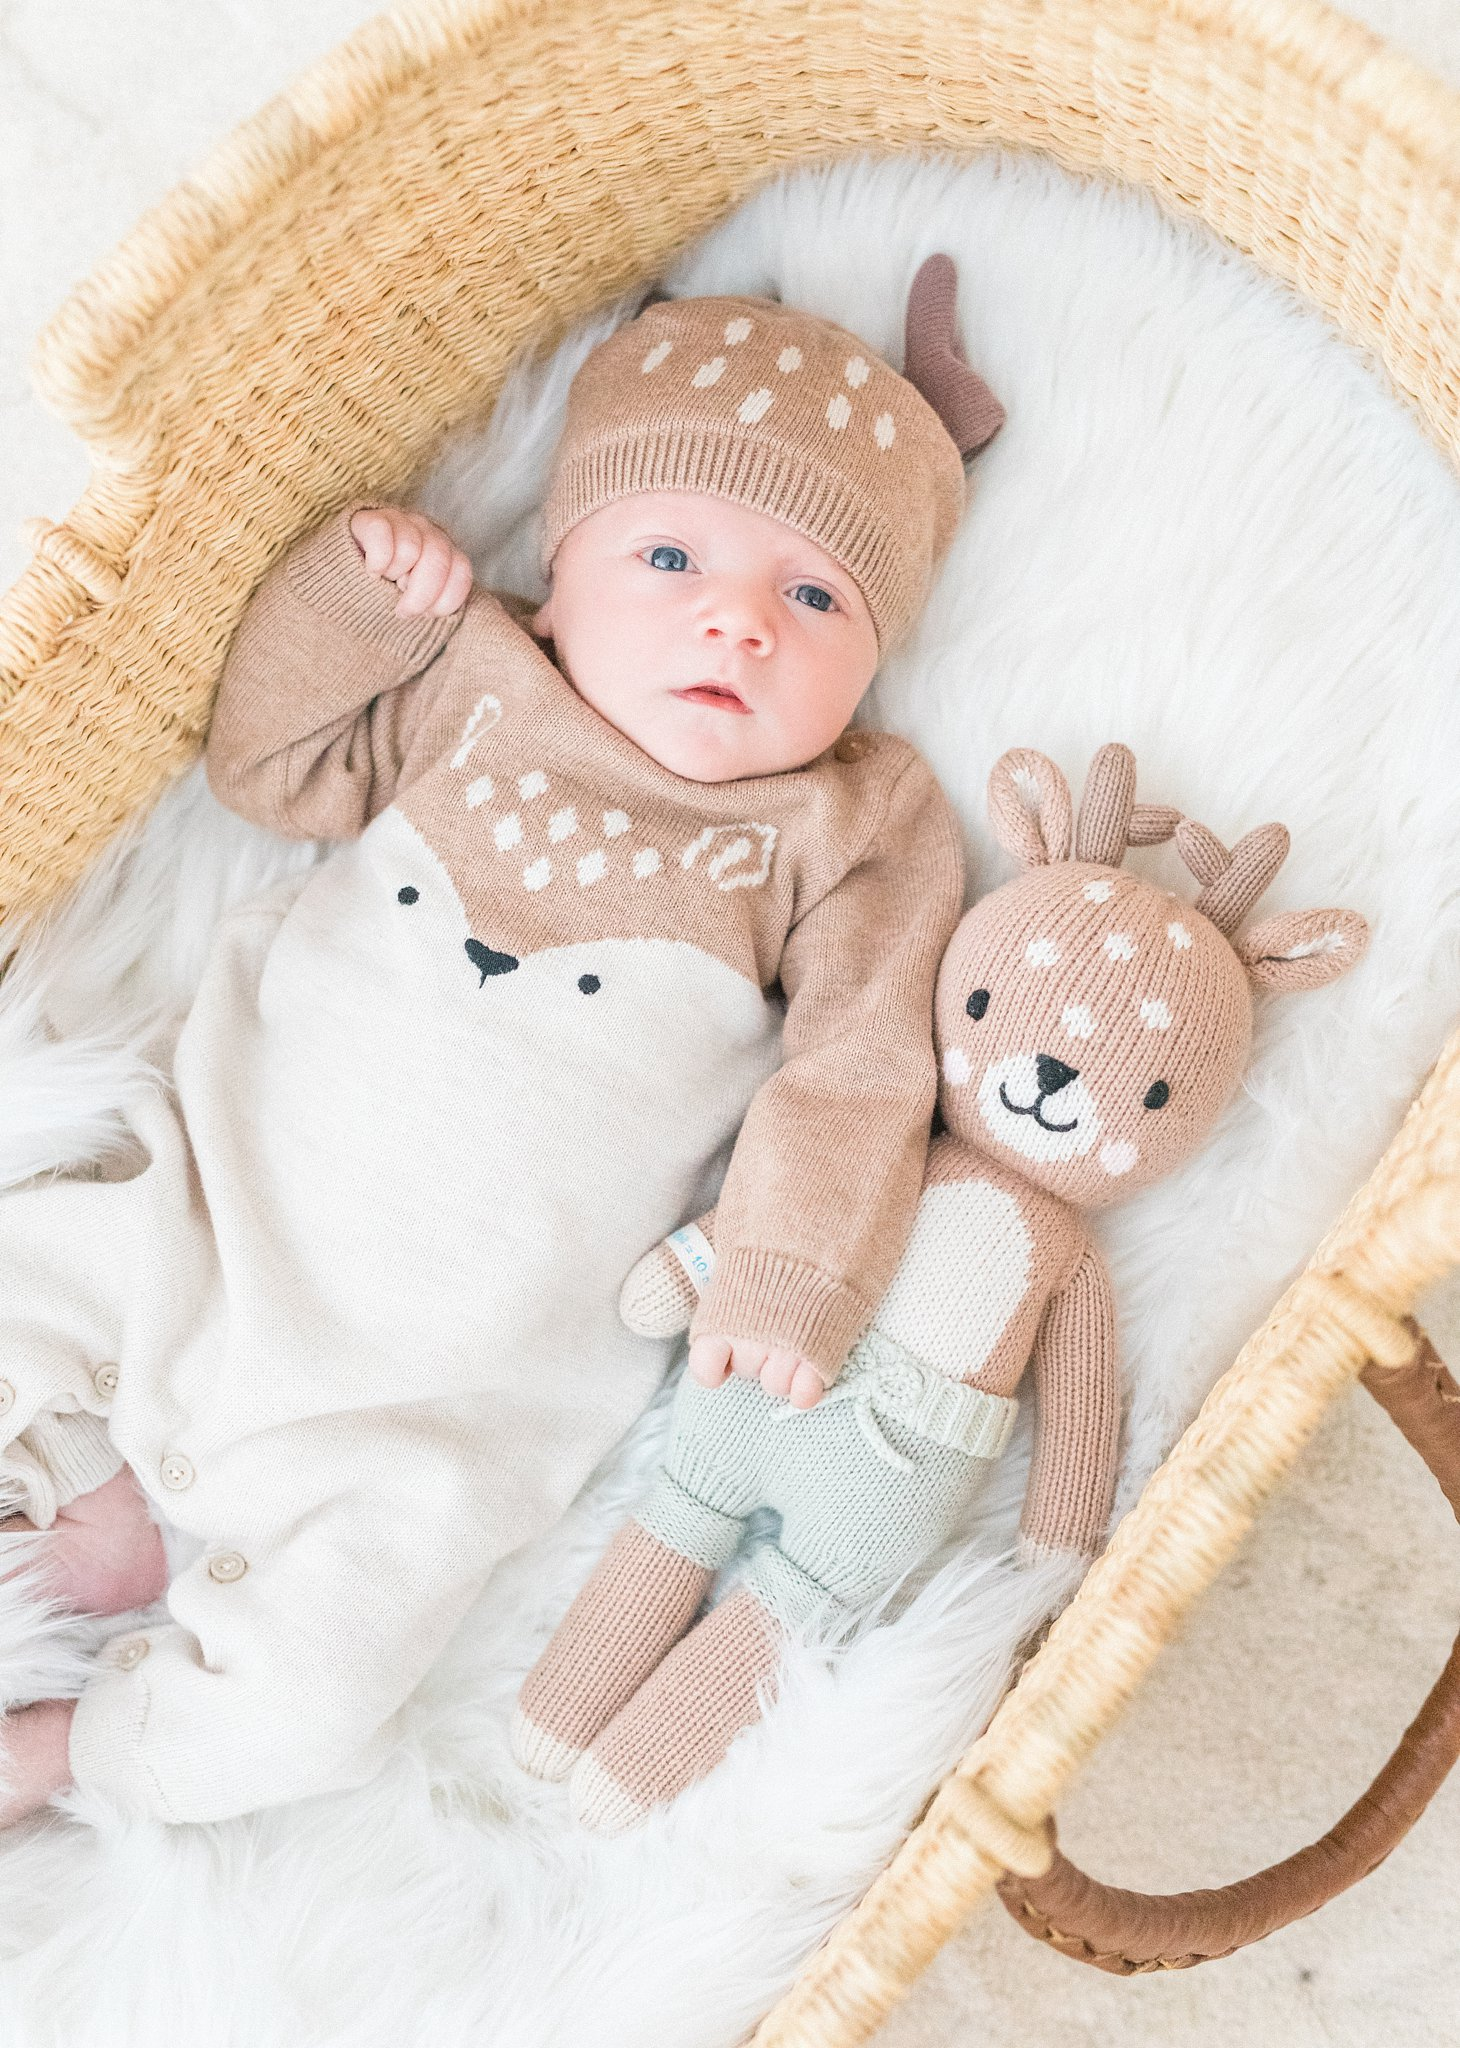 Cuddle and kind doll, deer outfit, Festive Newborn Lifestyle Photos During the Christmas Holidays